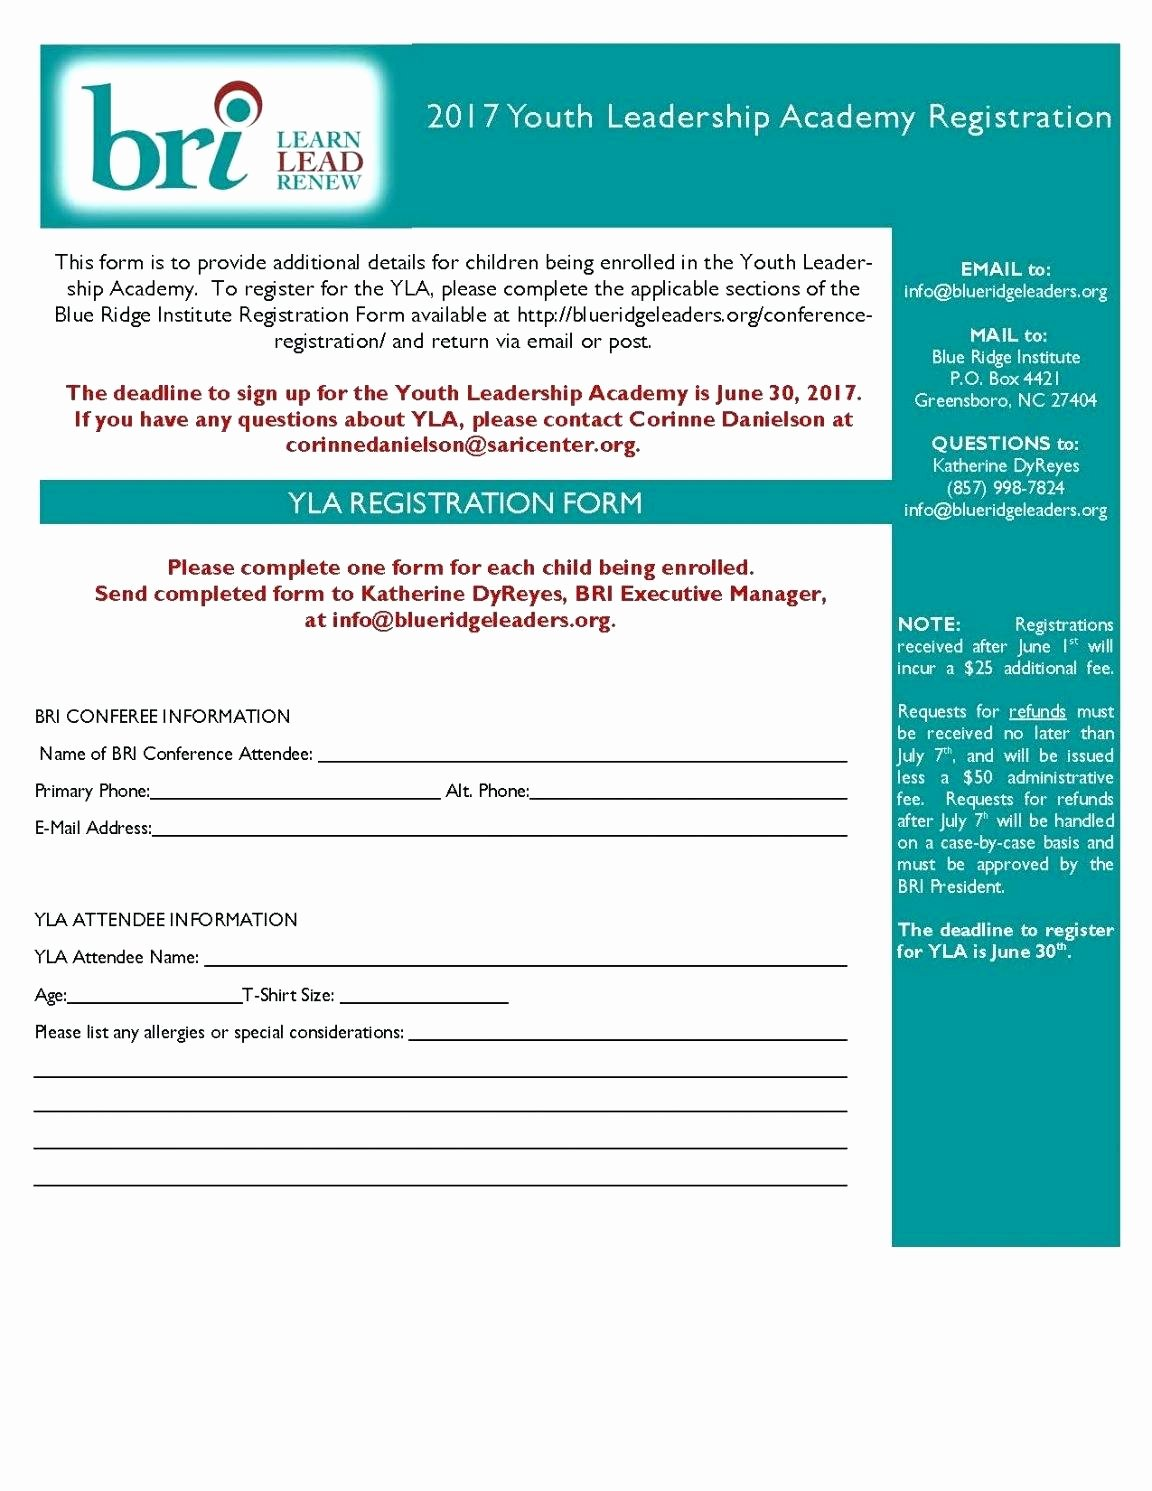 Event Registration form Template Word Best Of 97 Conference Registration form Template Word event